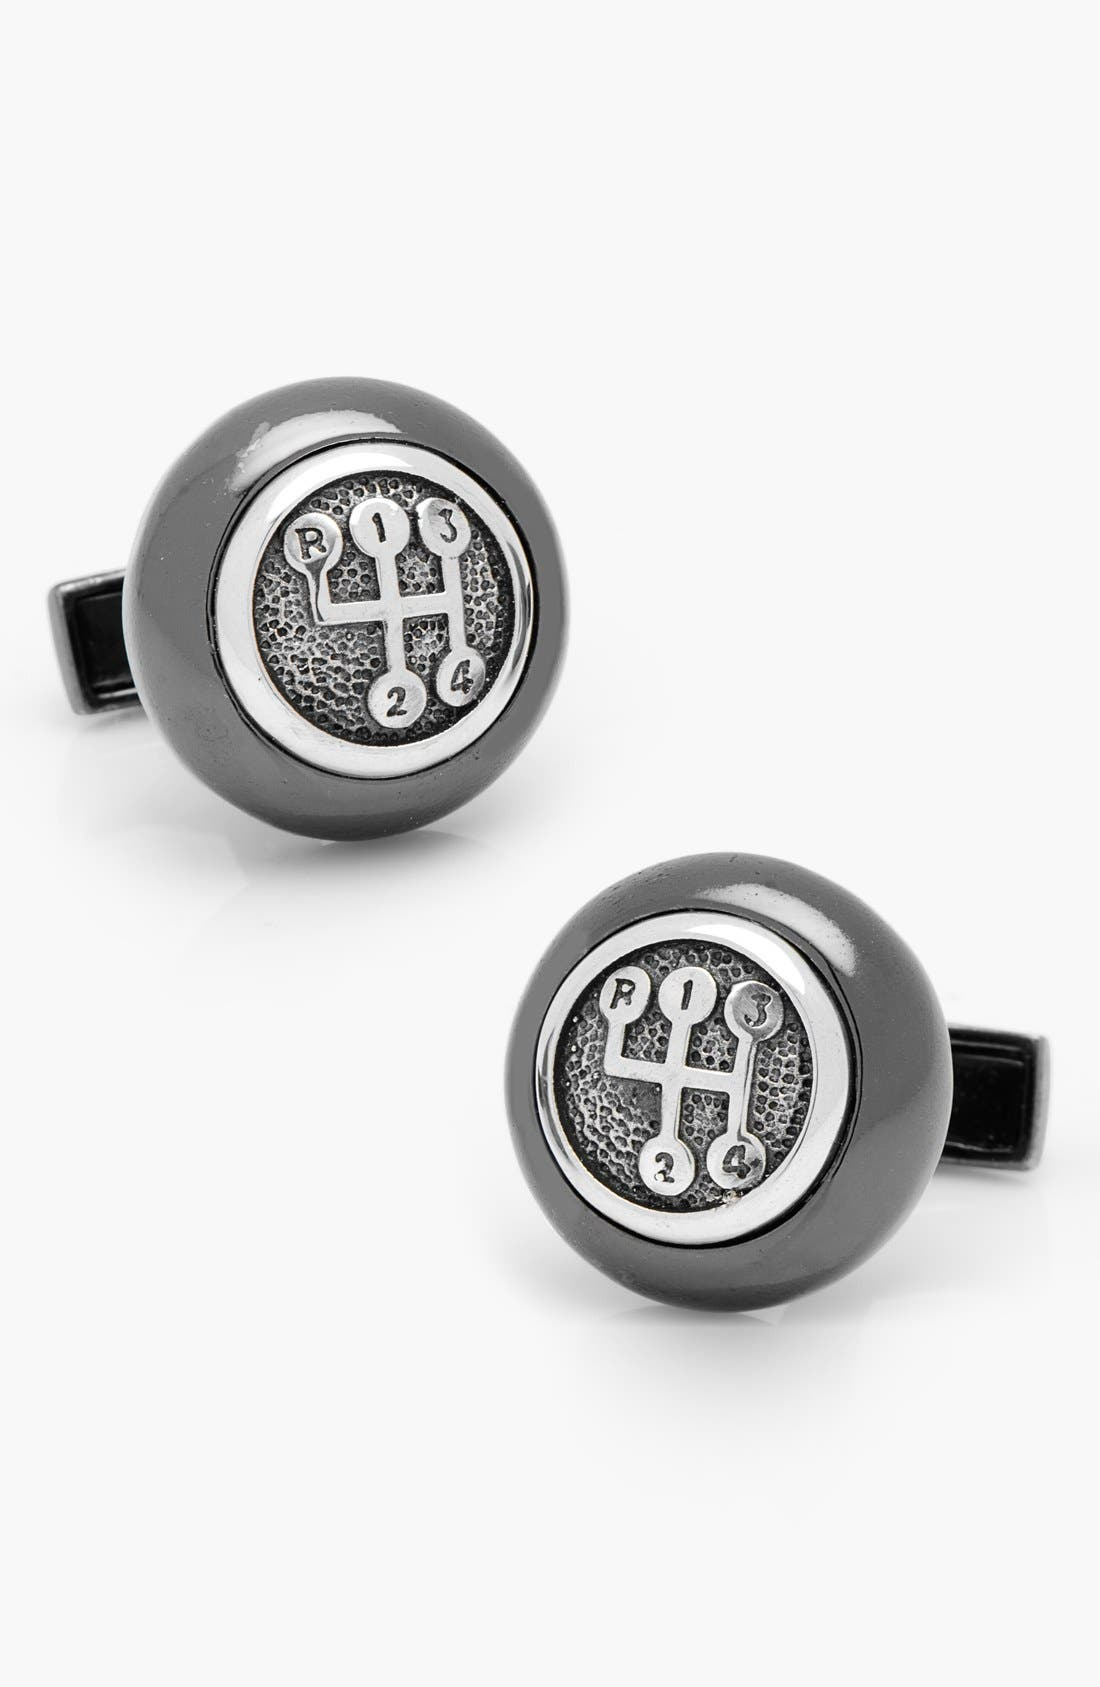 Alternate Image 1 Selected - Ox and Bull Trading Co. Gear Shifter Cuff Links